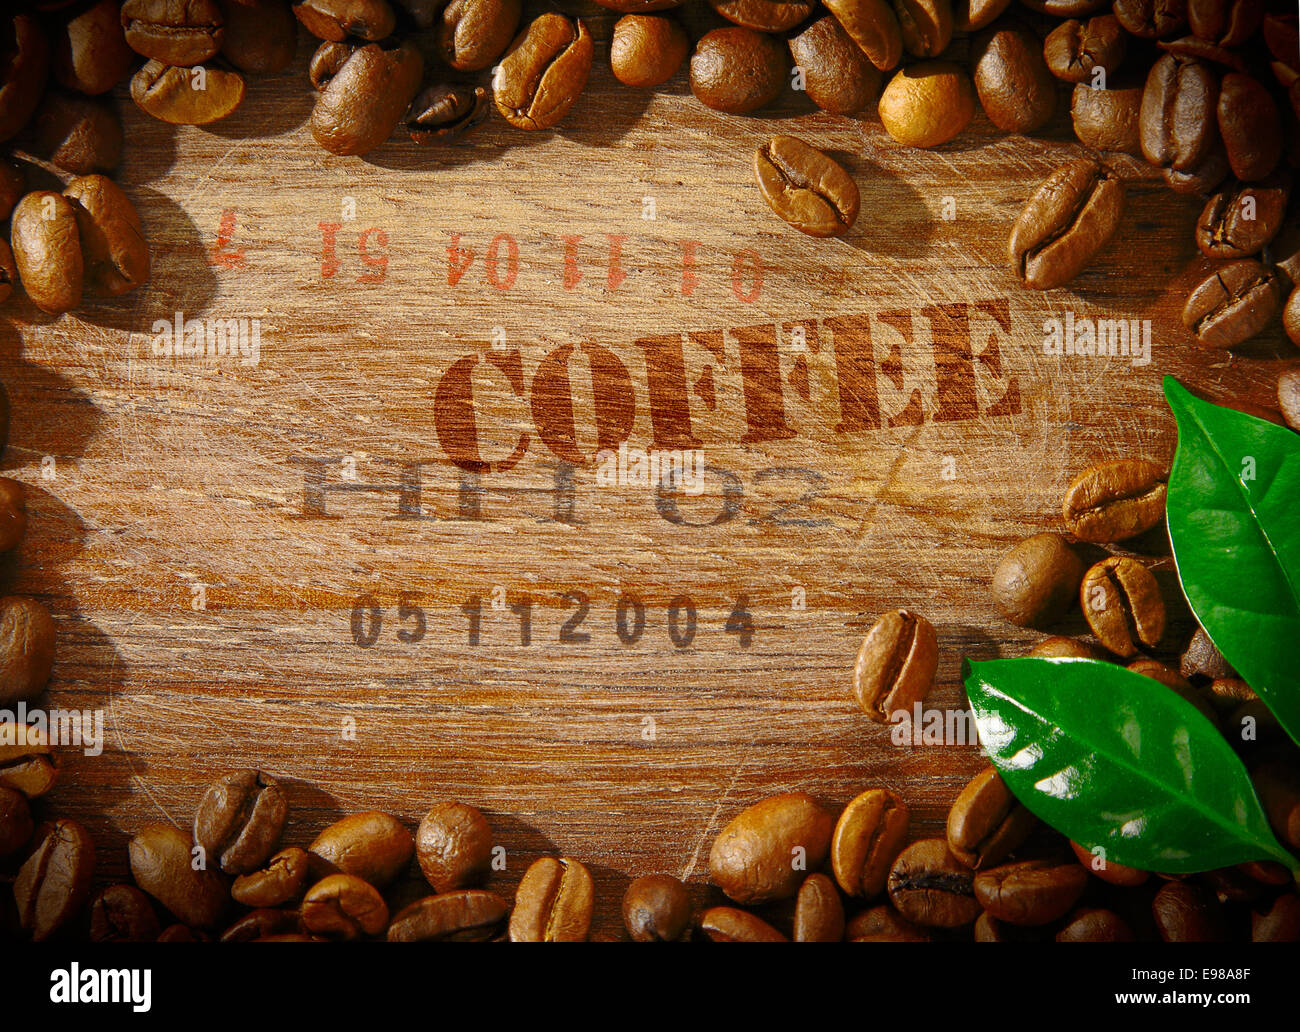 Fresh roasted coffee beans framing an old wooden board stamped with the word COFFEE and the shipment number of a Stock Photo